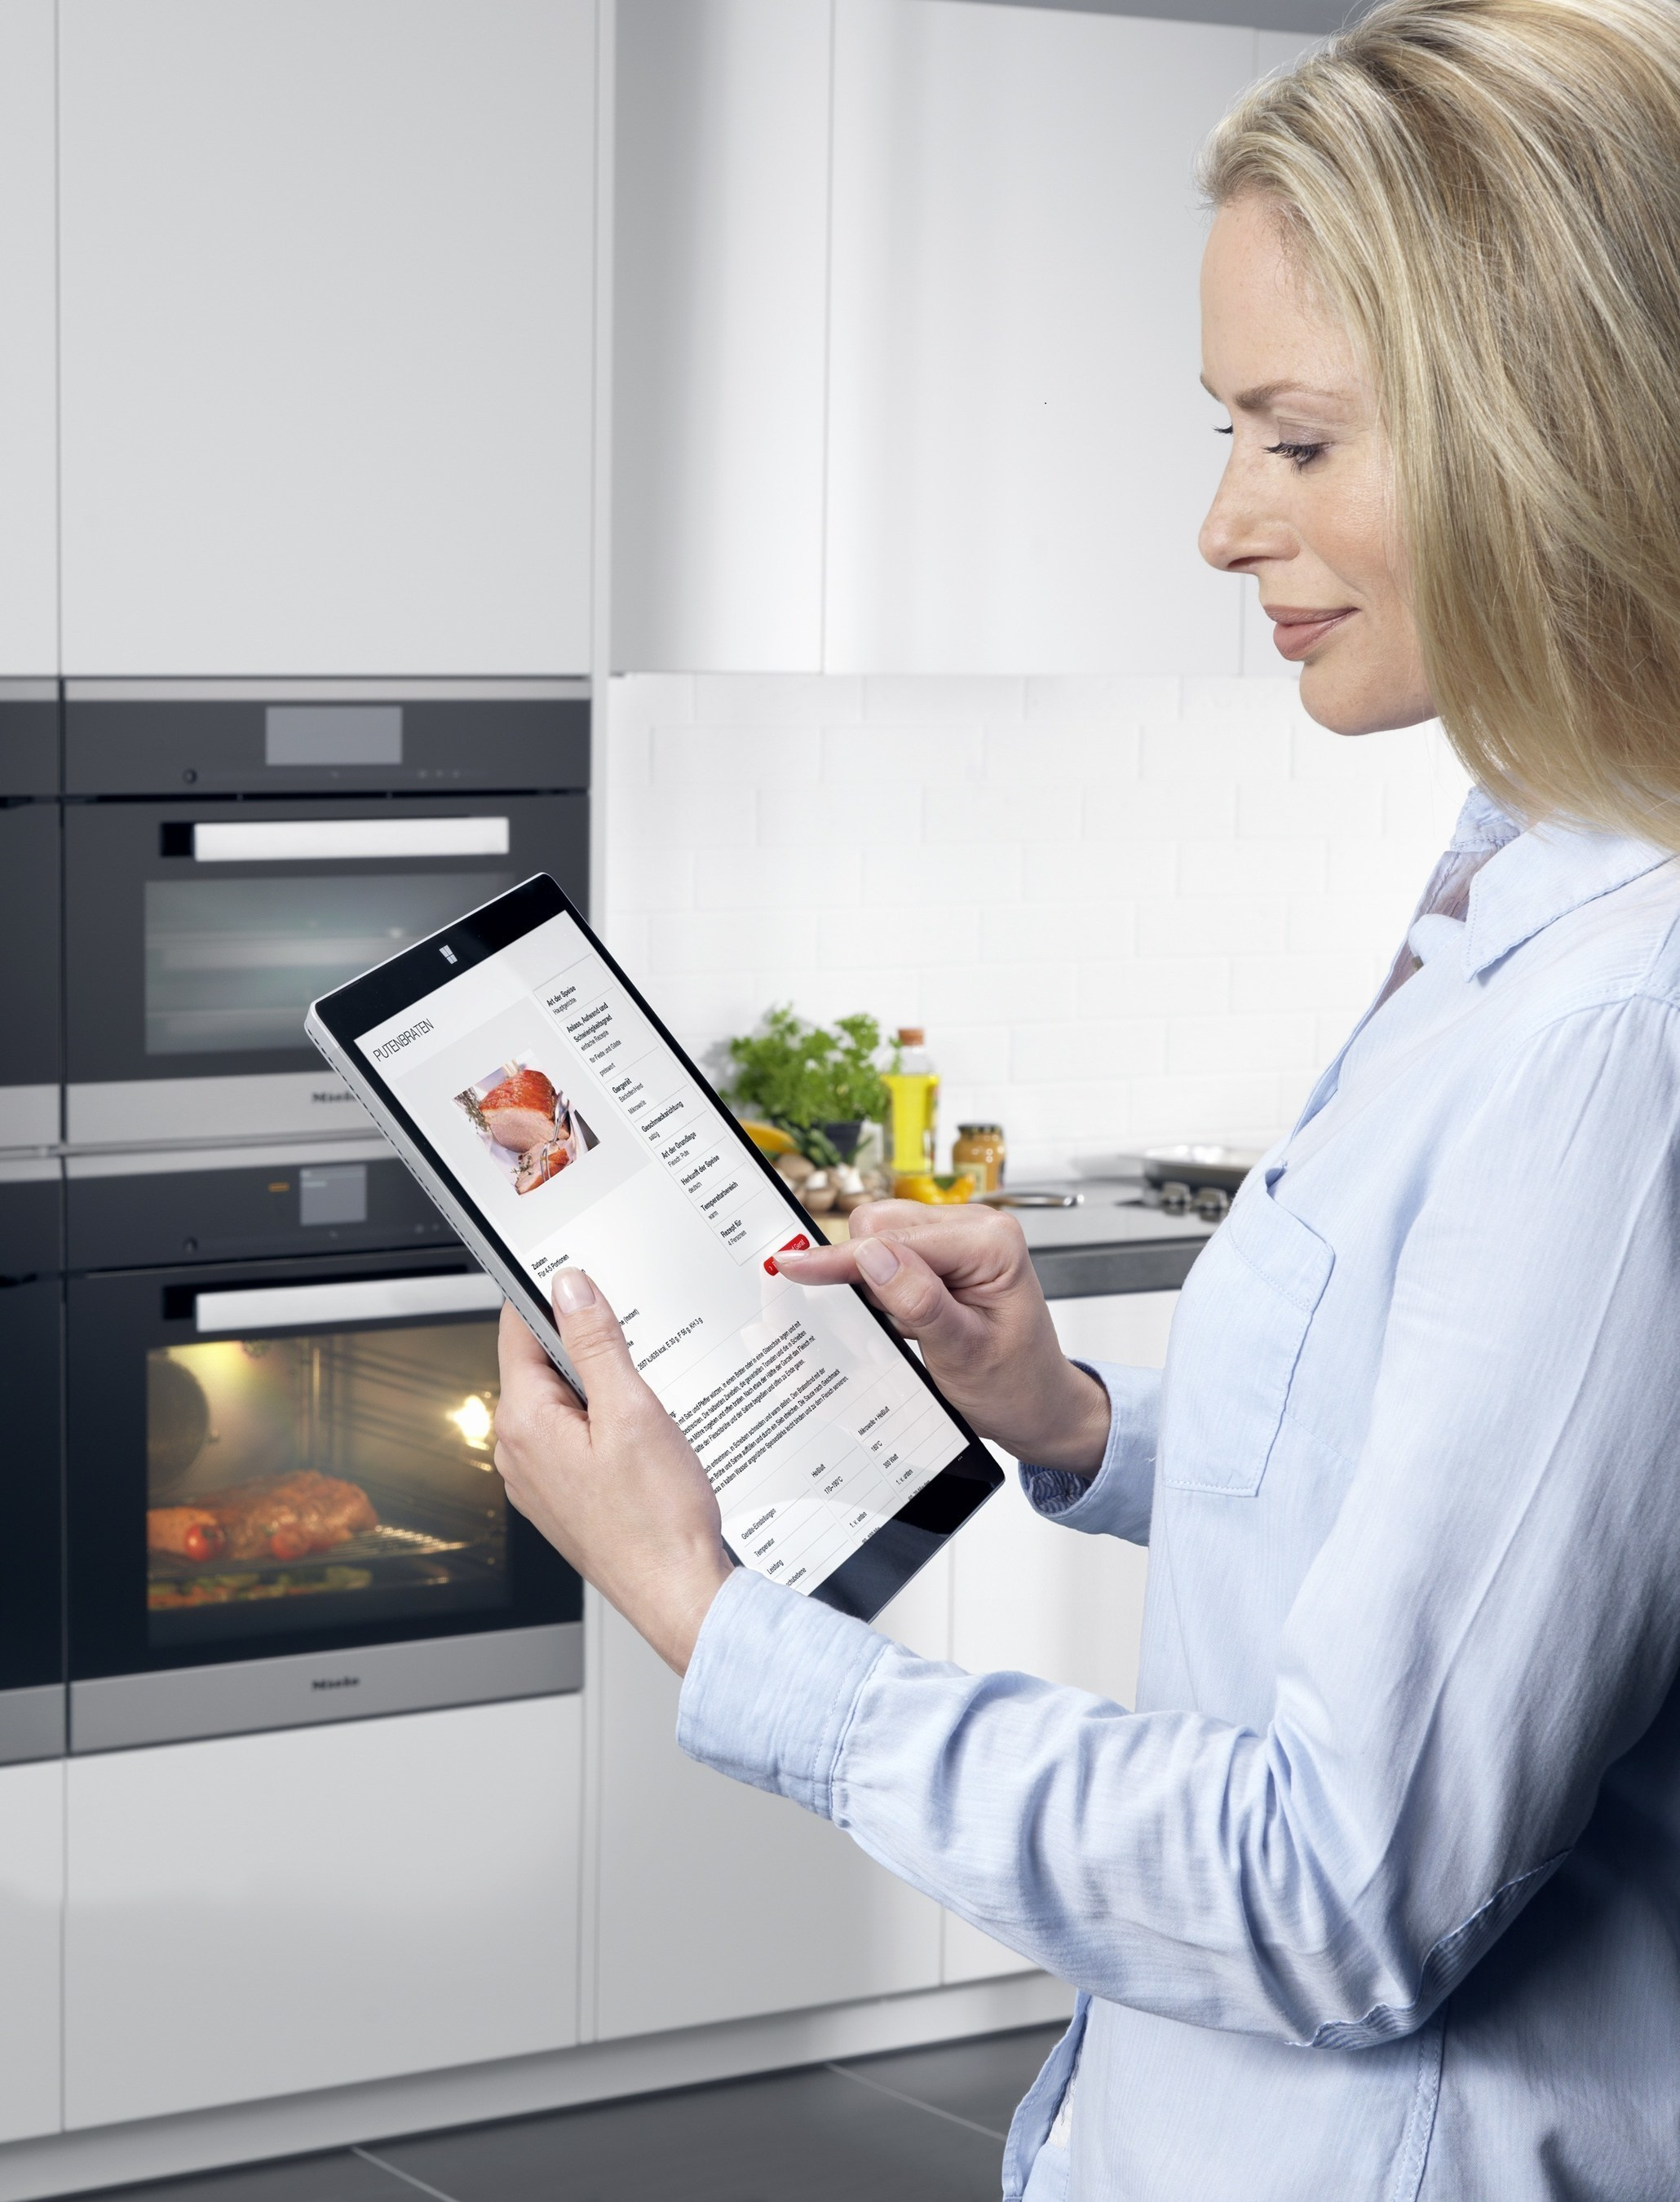 Browse a recipe on the Miele website, get the preparation steps on your tablet, and load the automatic program on your oven. The Microsoft and Miele study elevates cooking to a new level.